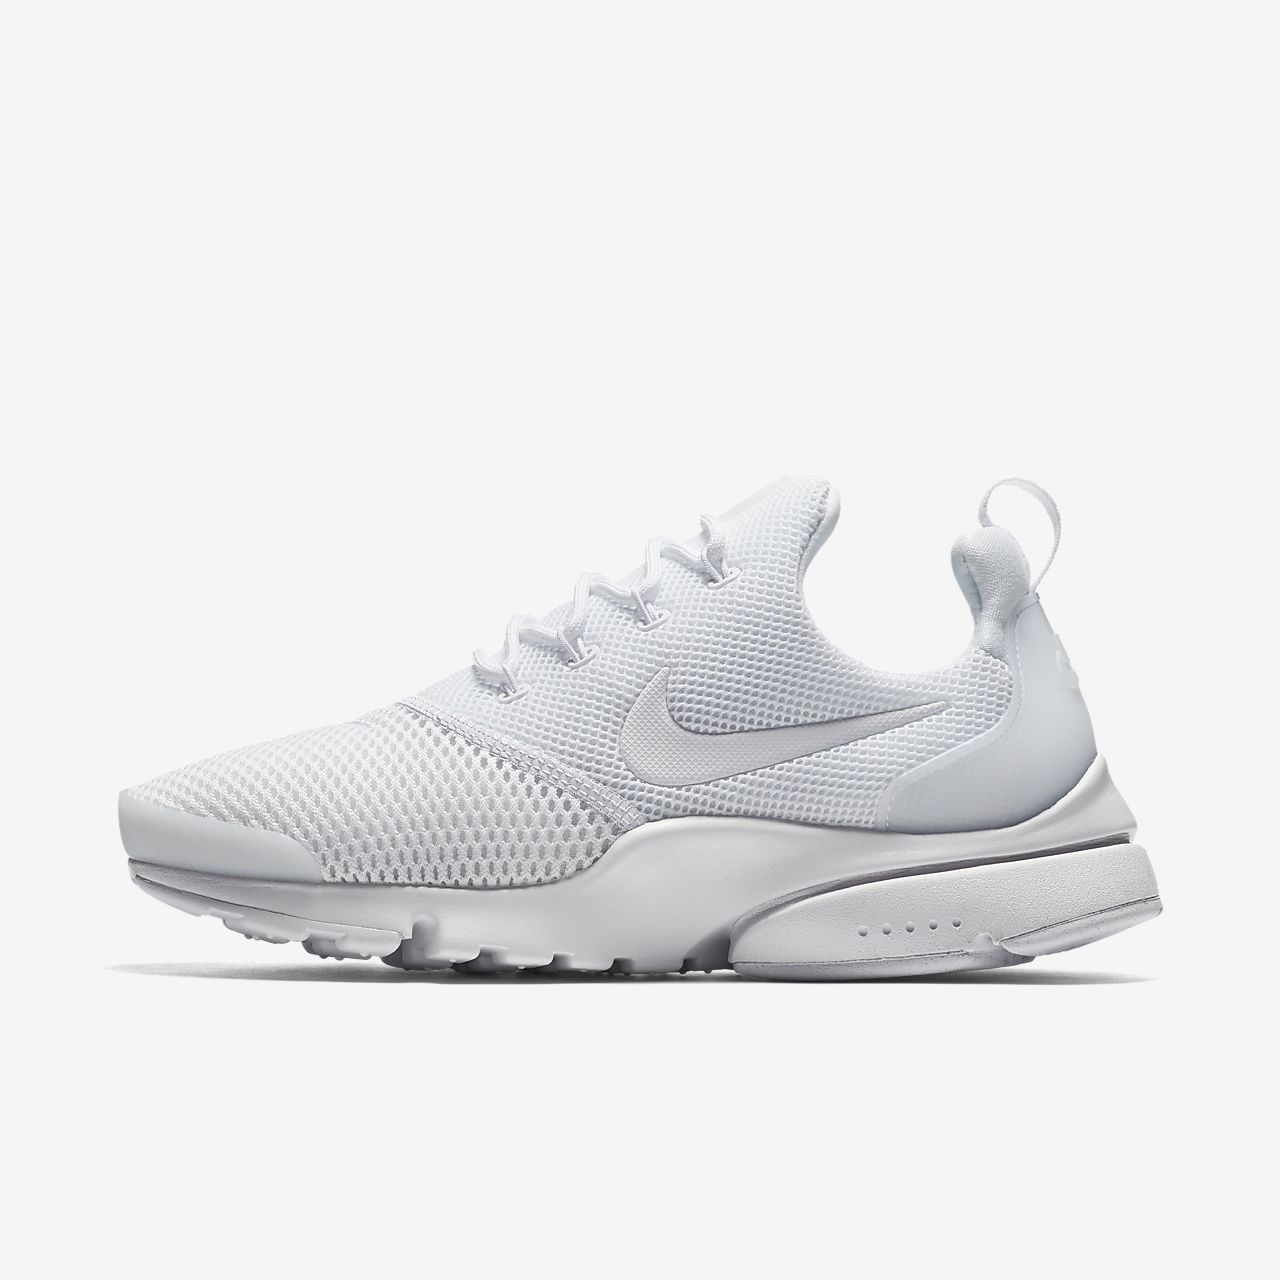 Nike Presto Fly Womens Shoe